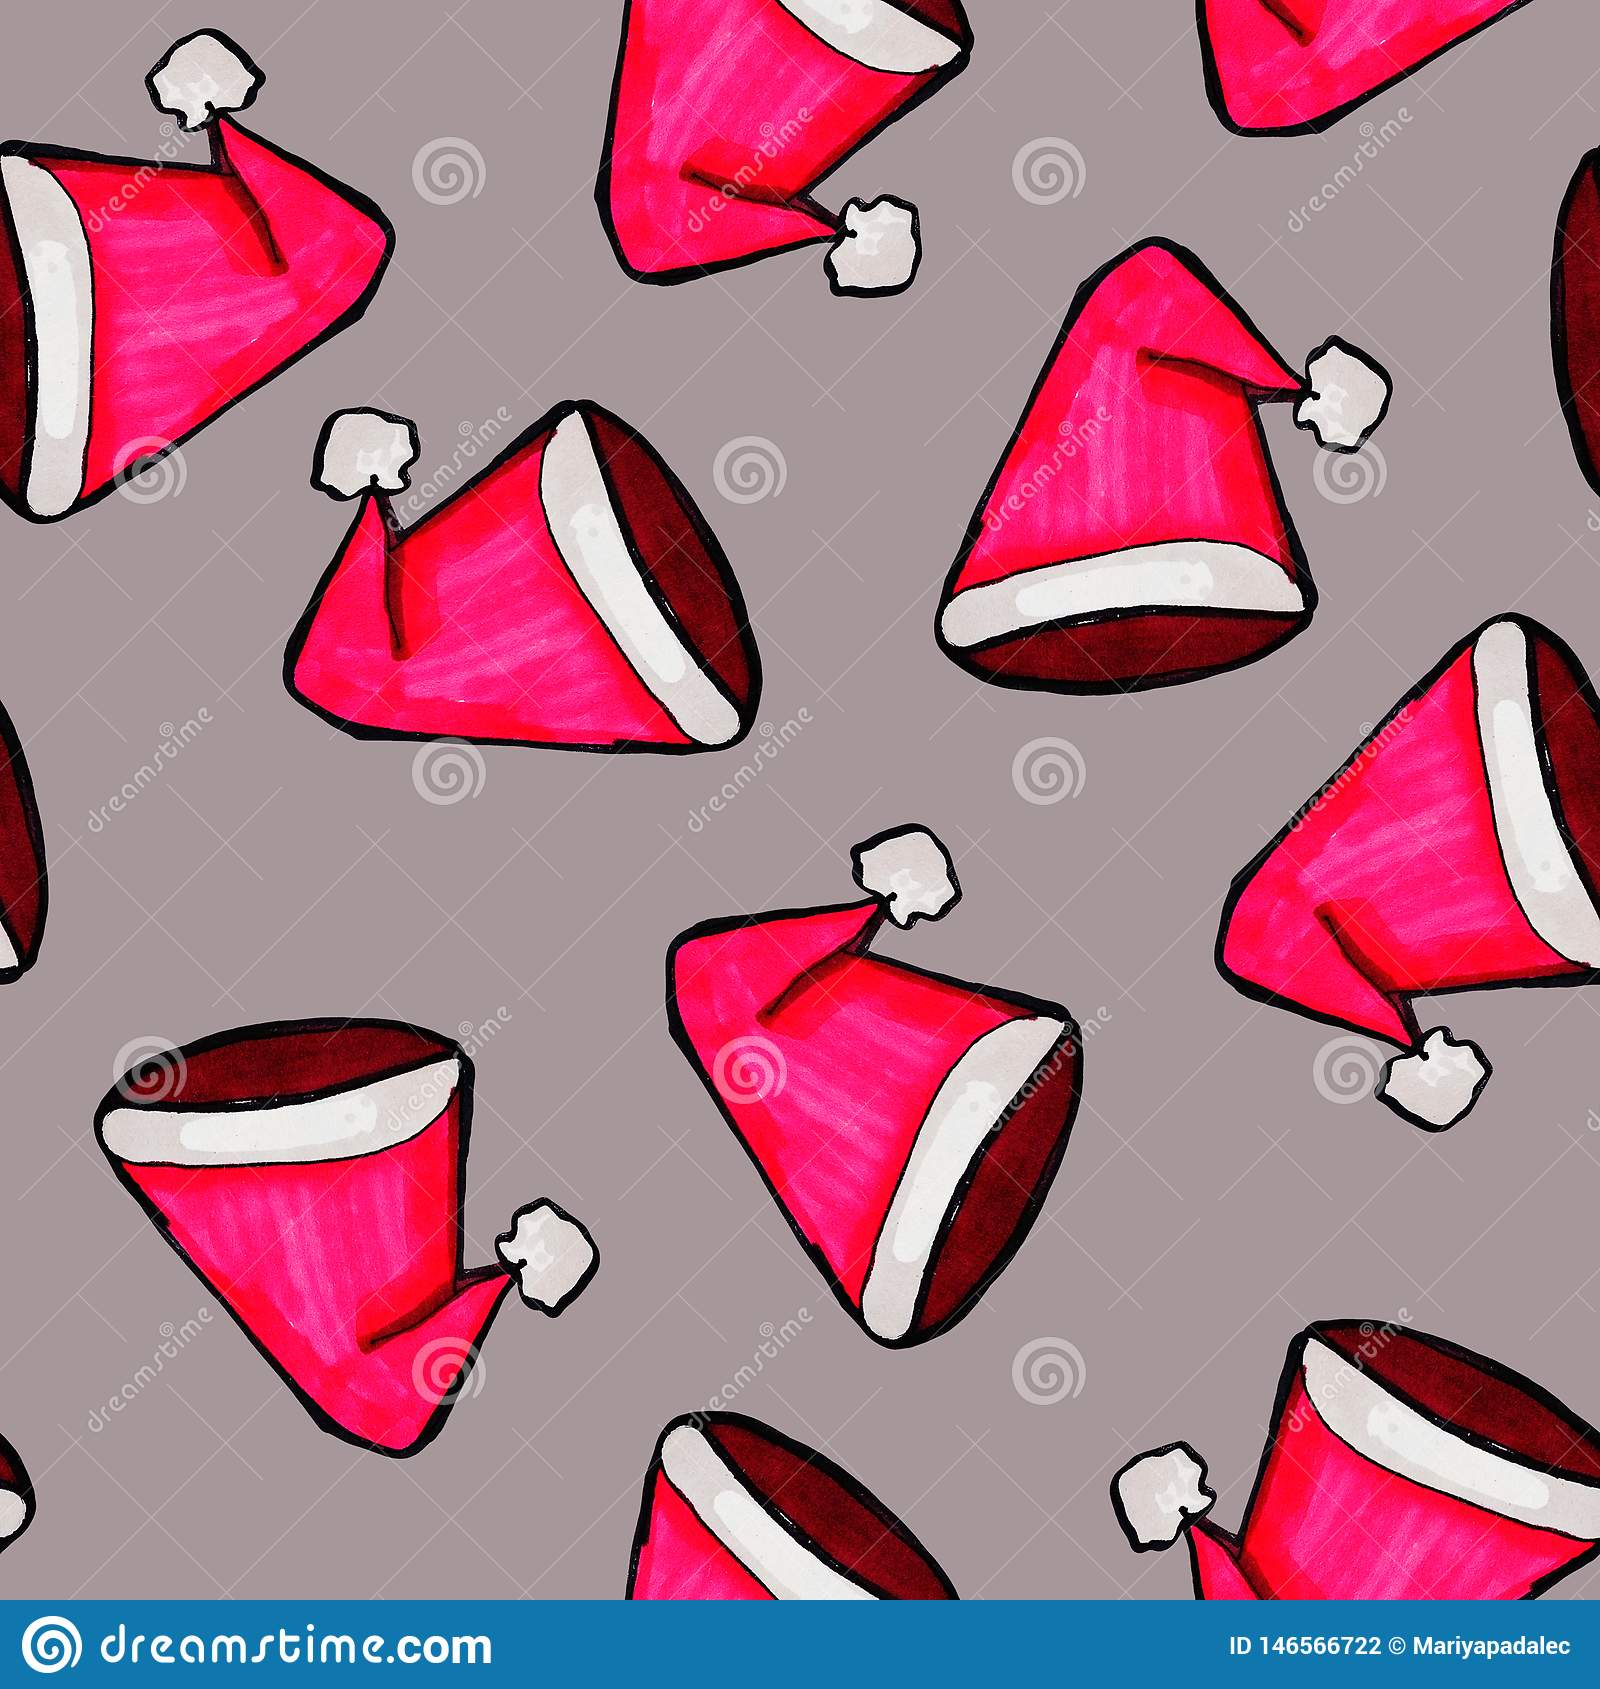 Christmas seamless pattern drawn by hand. Red Santa Claus hat on a grey background. Happy New Year